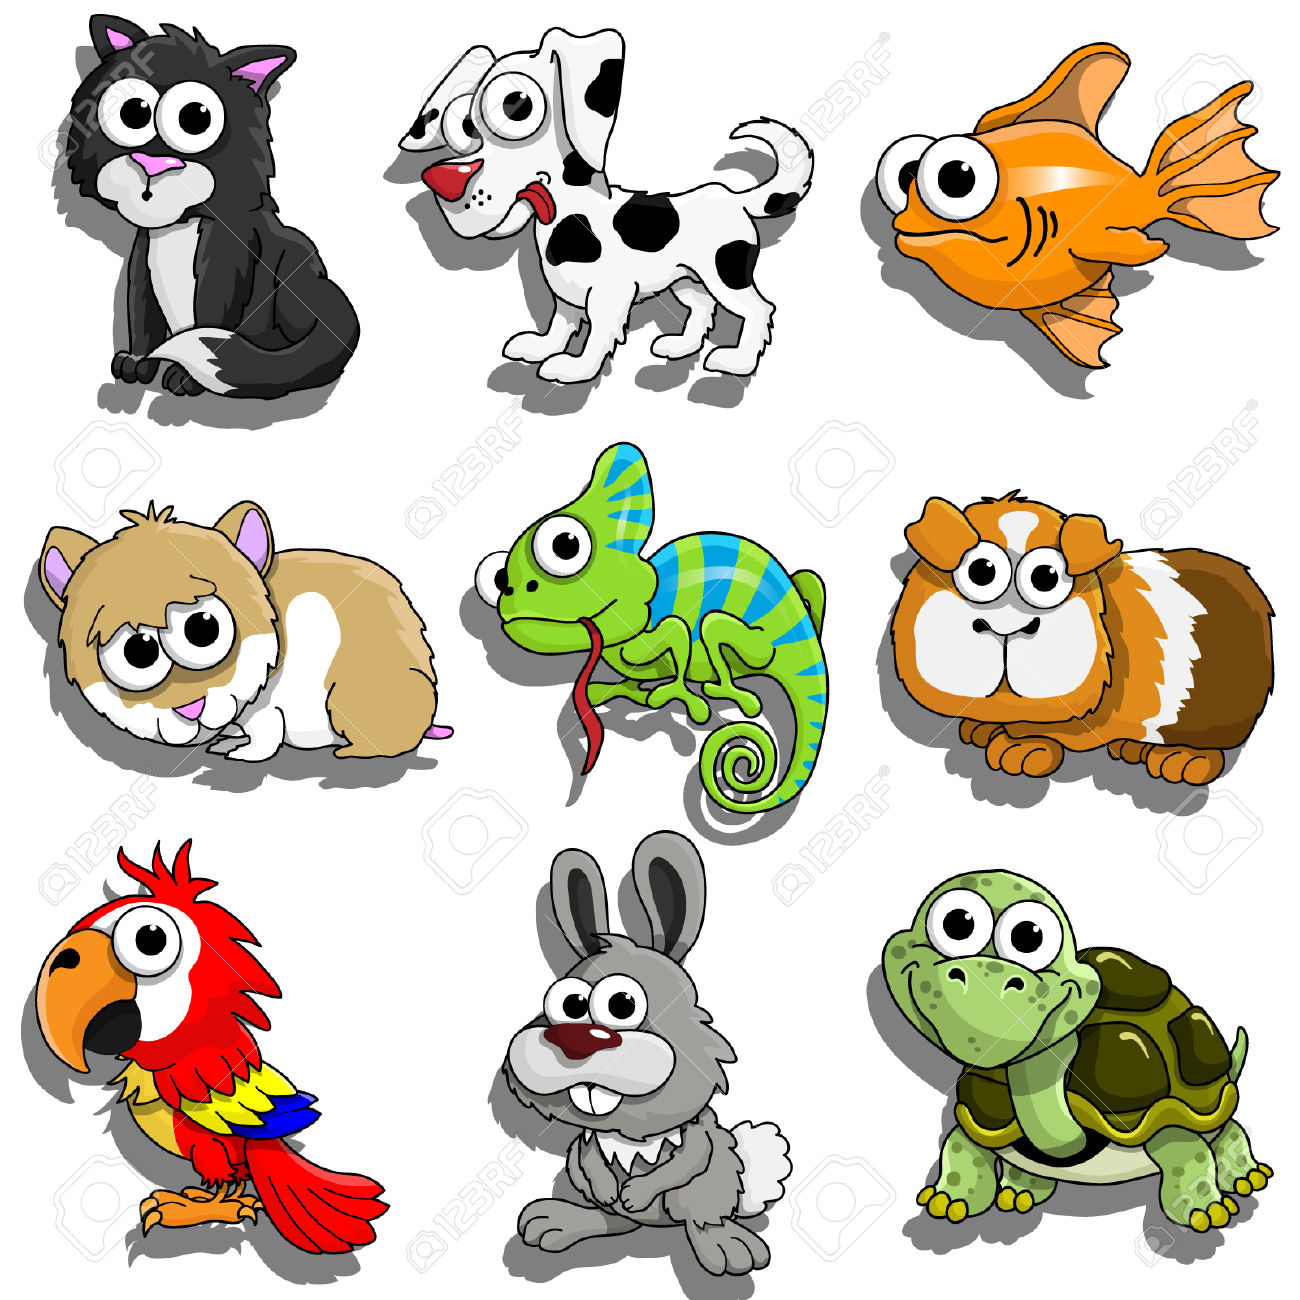 Pet animals clipart 7 » Clipart Station